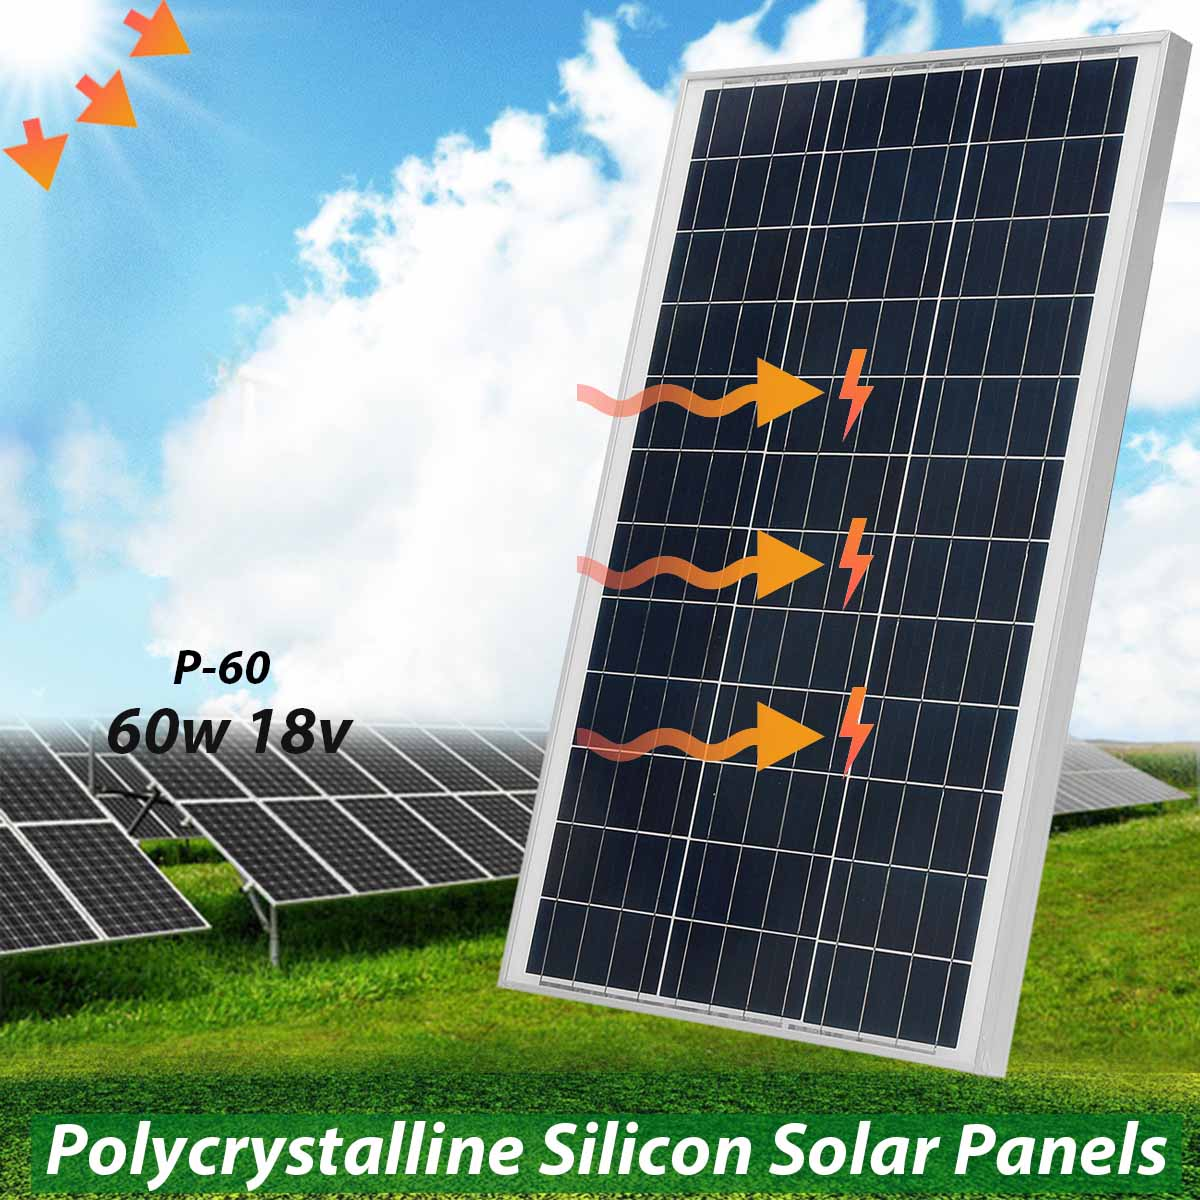 KINCO 75w 18v Polycrystalline Silicon Solar Panel With Glass Bearing Plate Suitable For Car Battery Used With Wind Generator